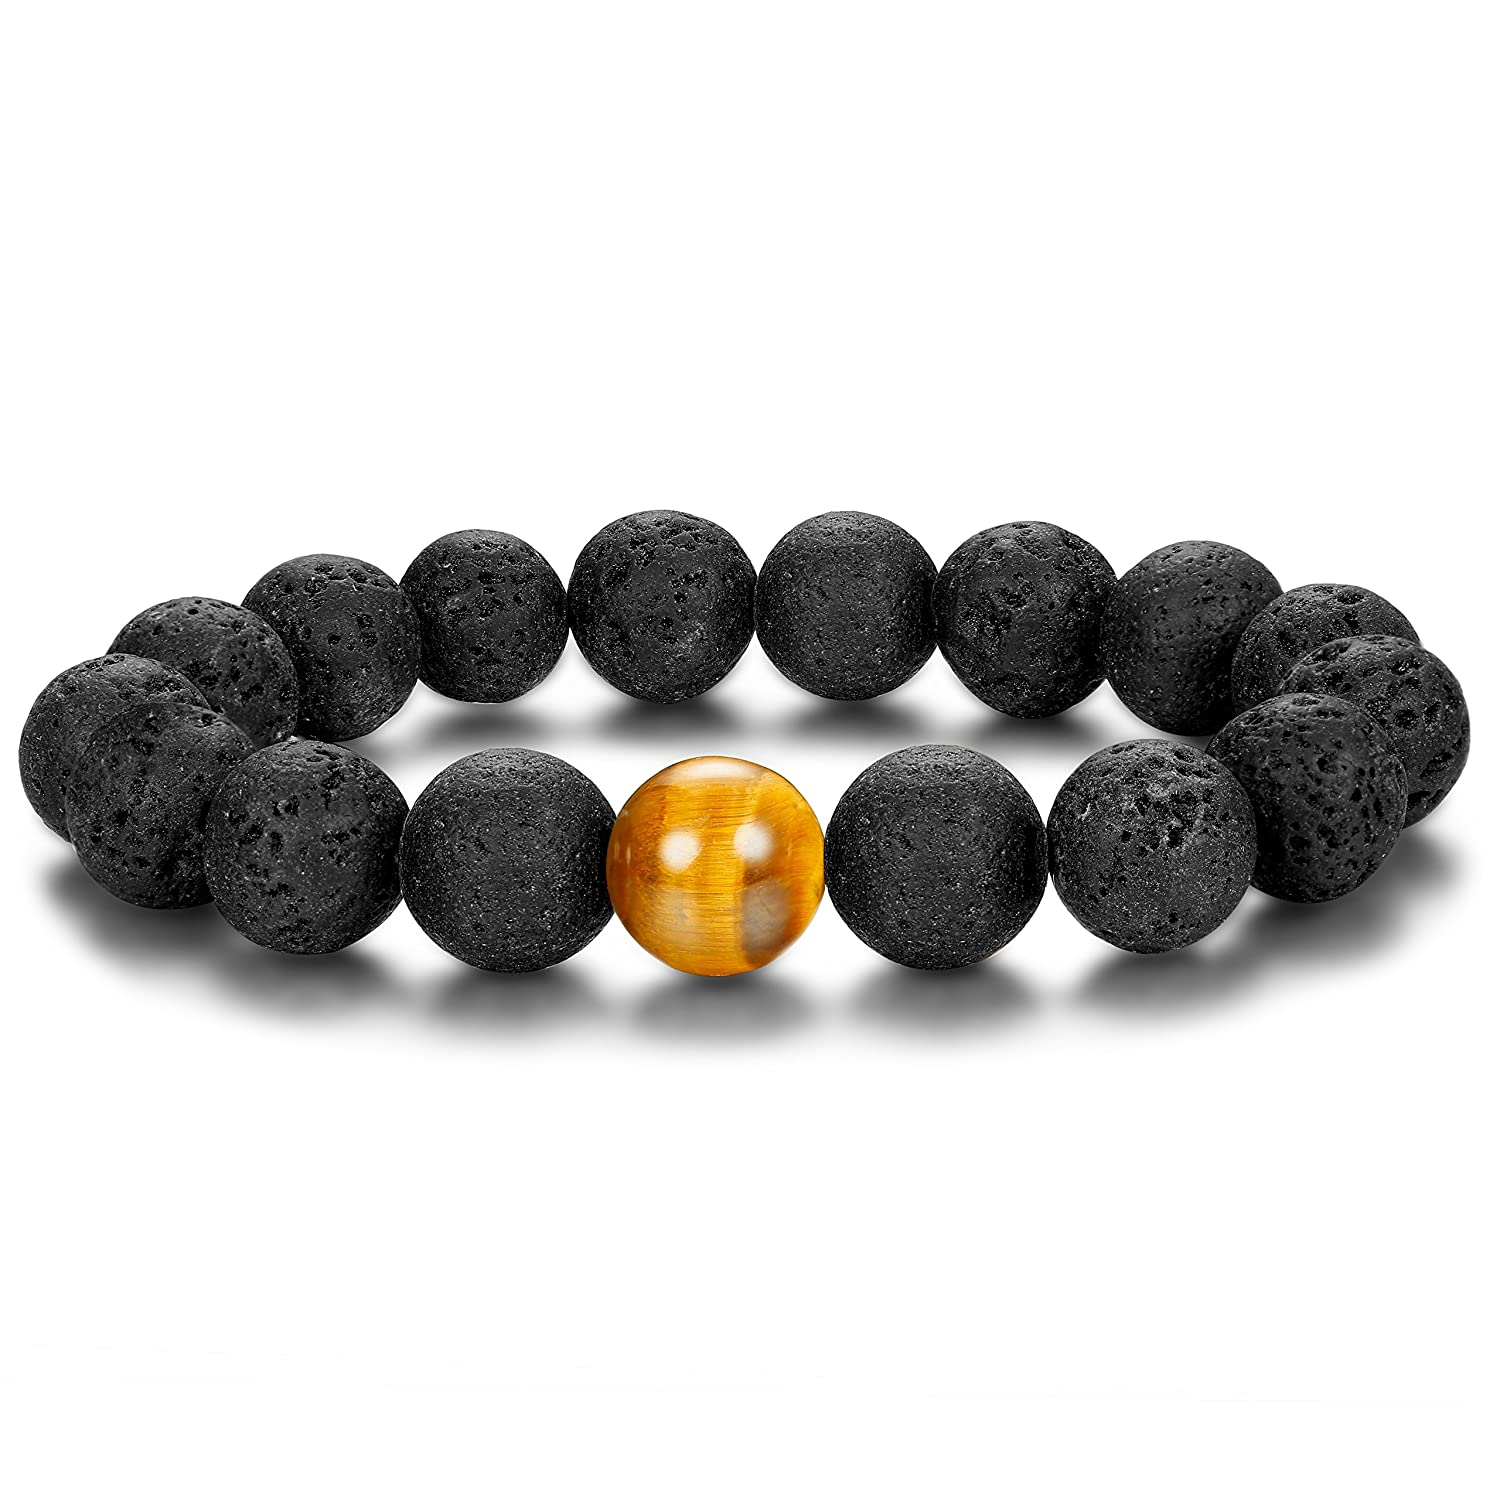 6c47019d29 SPECIAL DESIGN-- 1 Piece Natural Lava Beaded Bracelate With 1 Tiger Eye  Bead